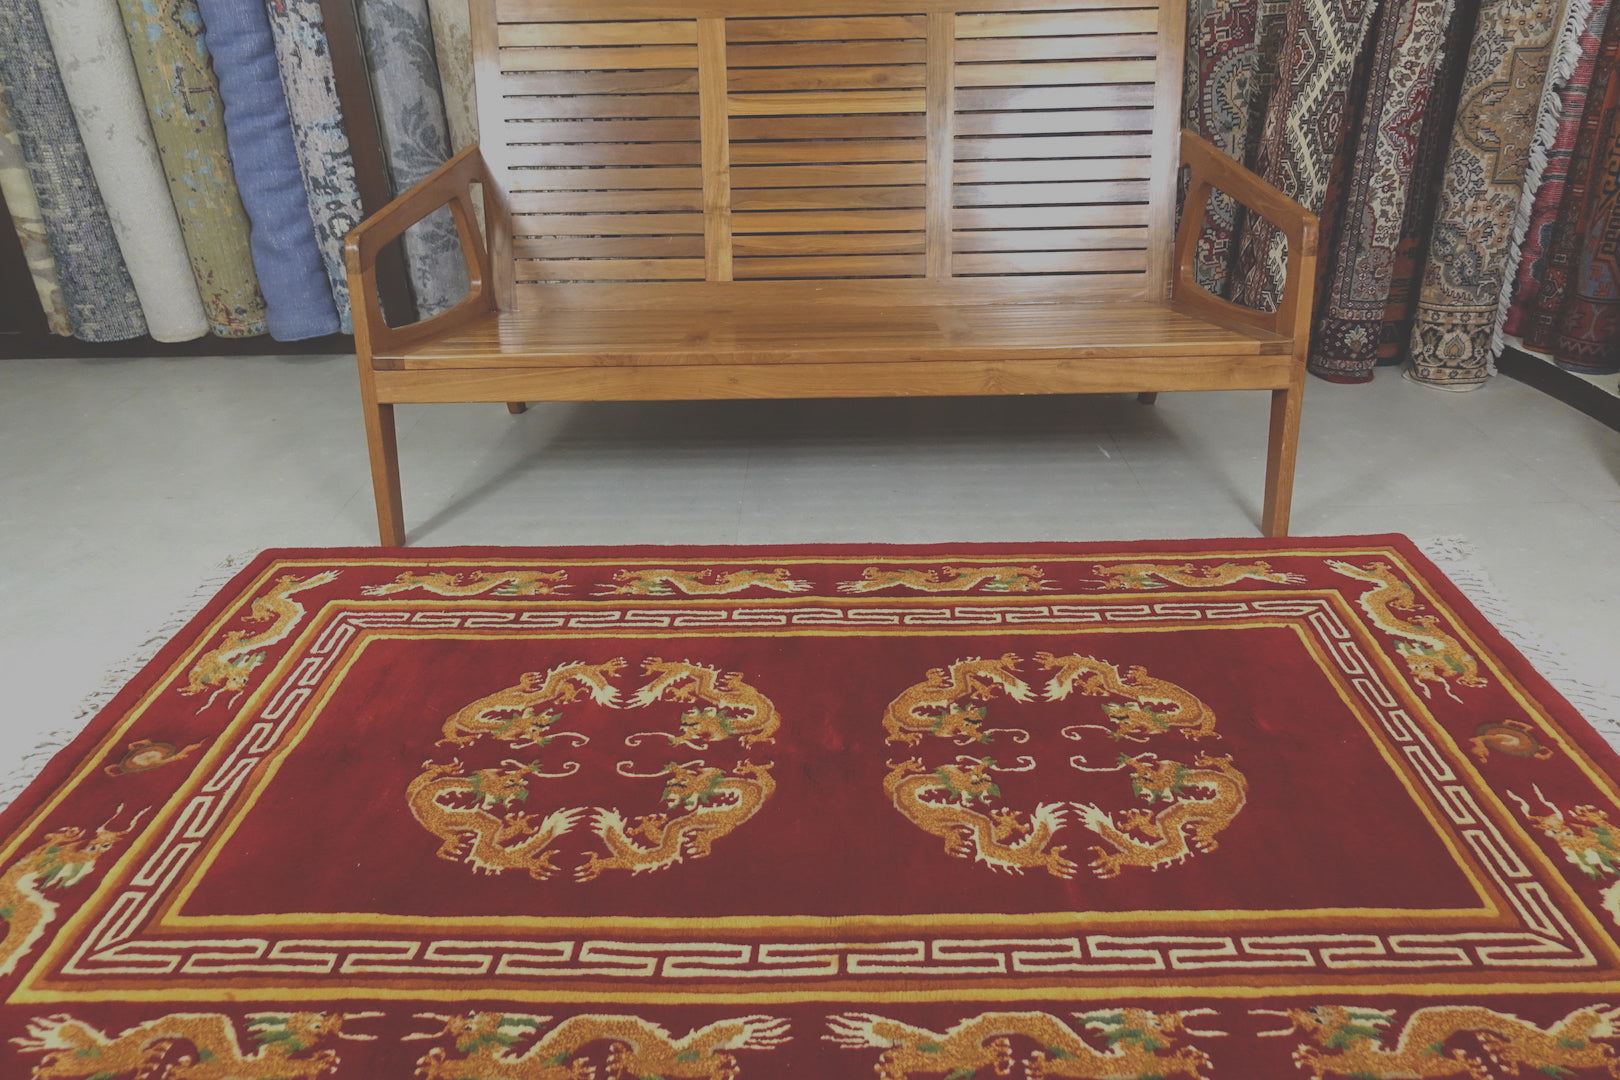 A 4 by 7 feet tibetan wool rug. The colours used are red,beige and tan.